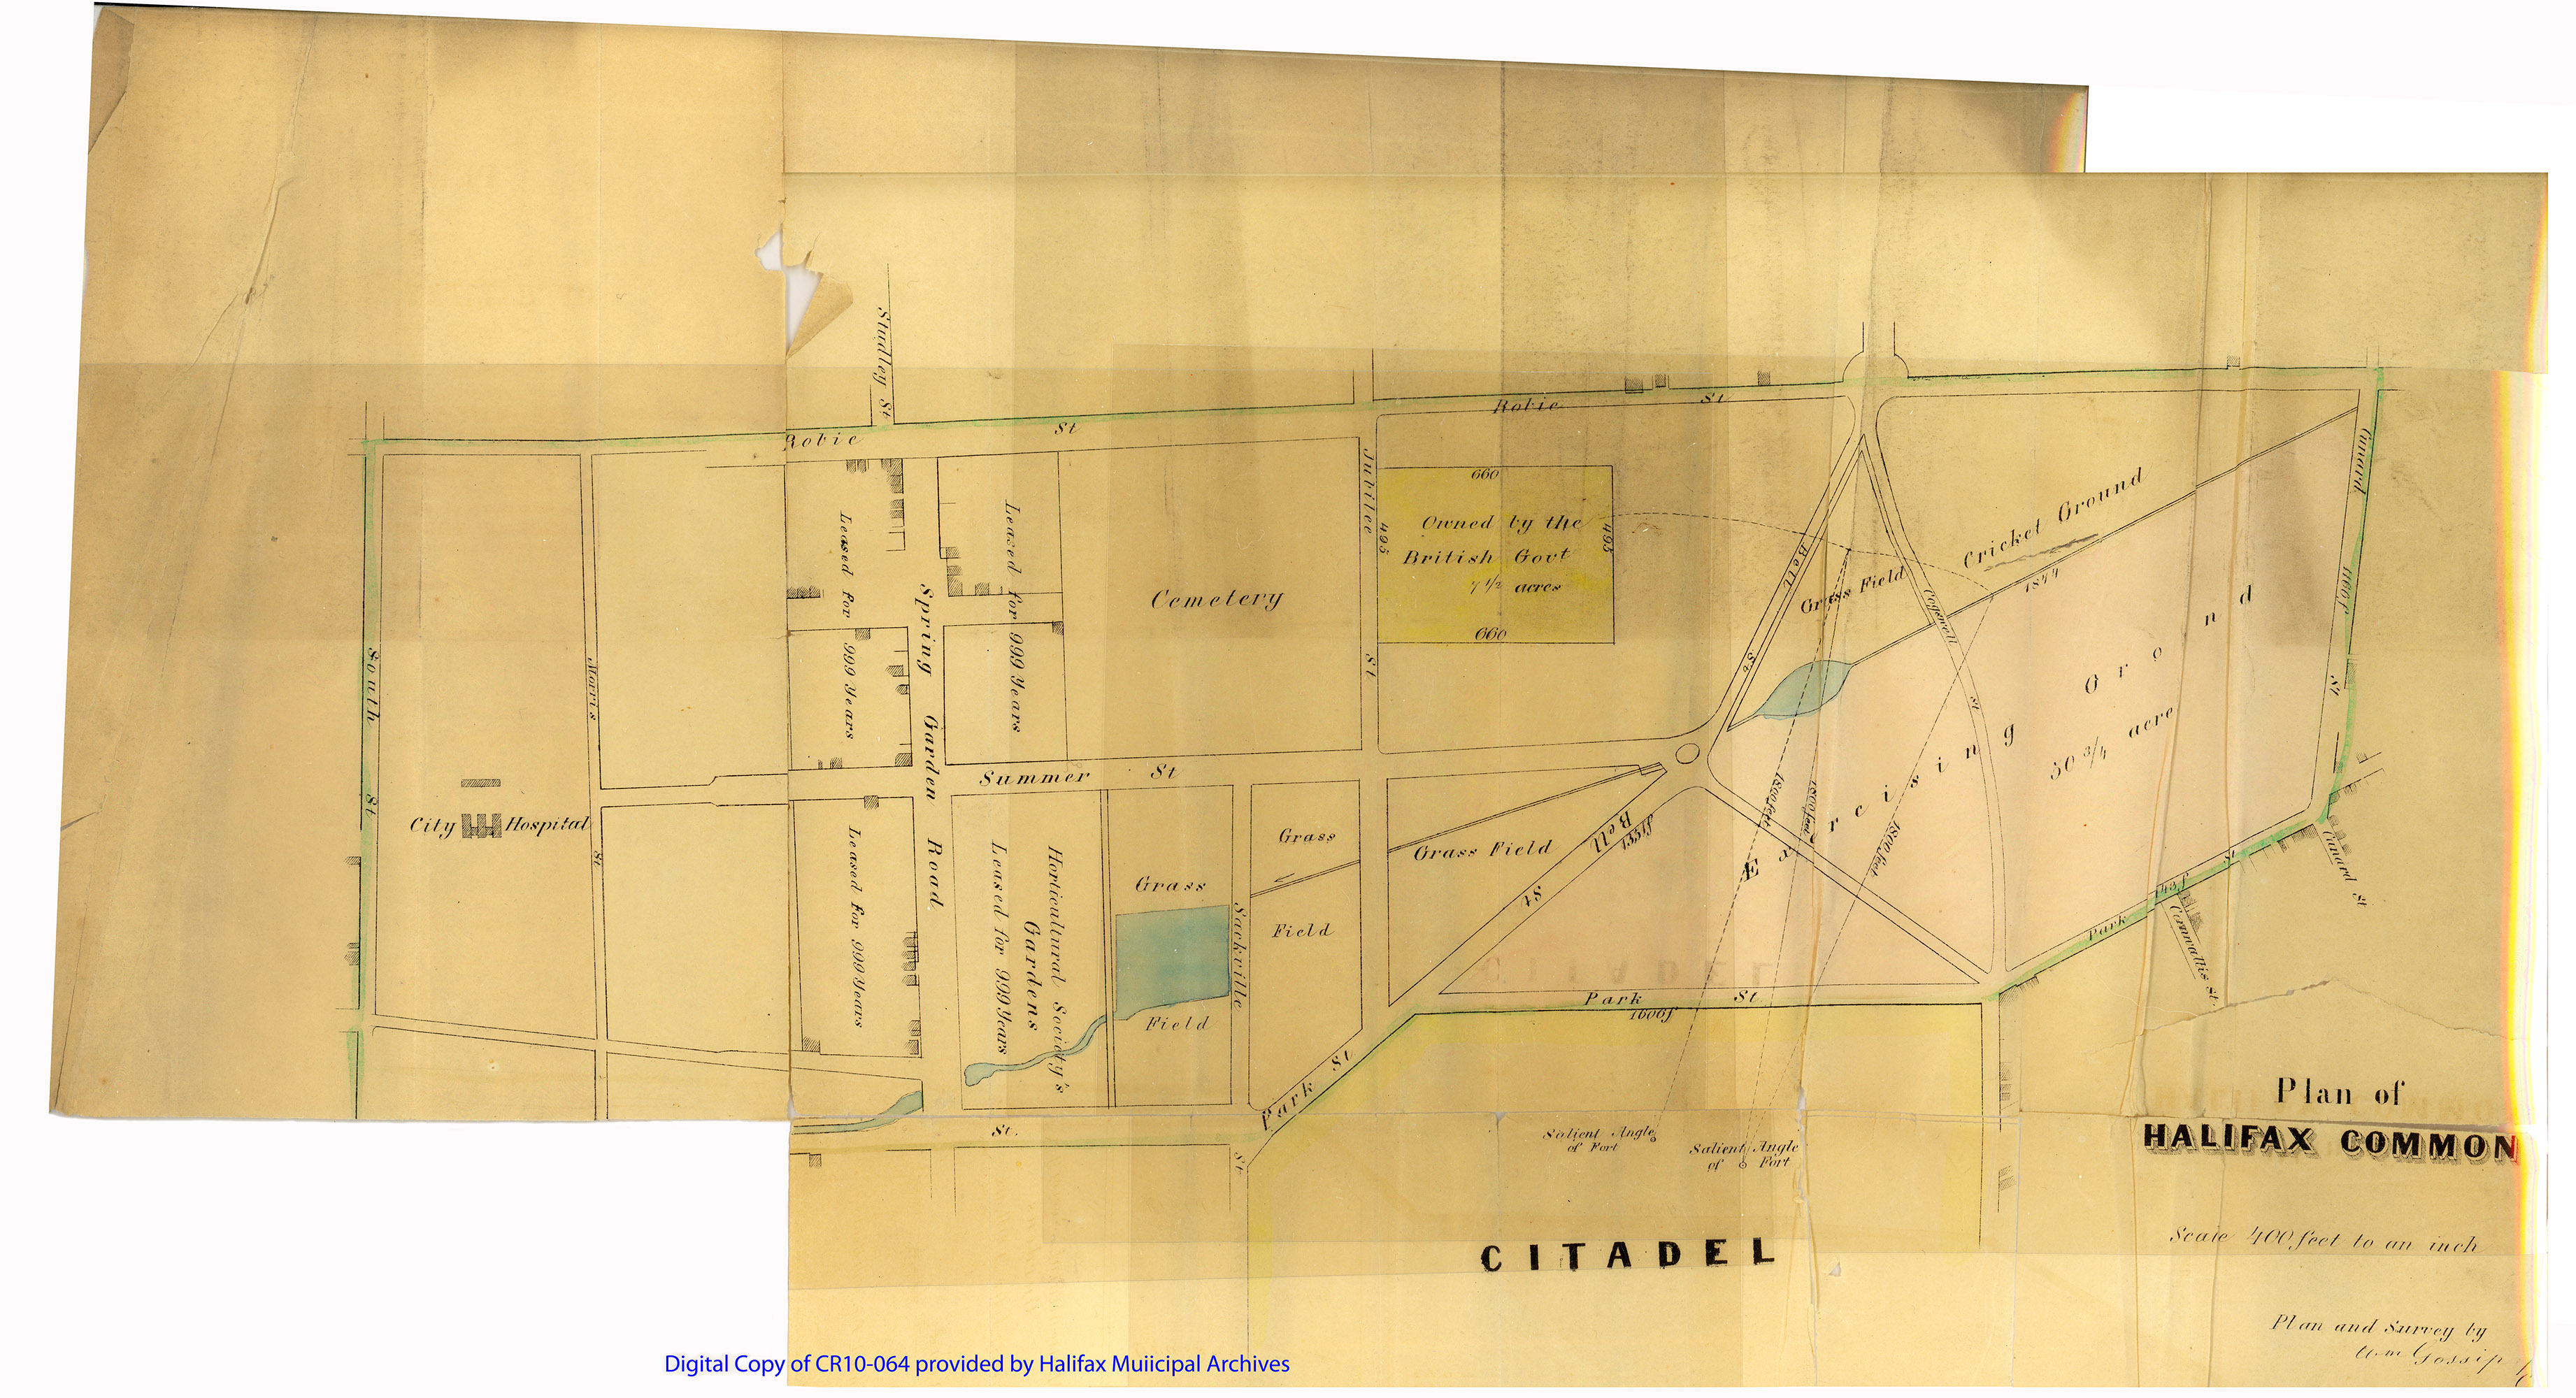 Digital copy of plan of Halifax Common showing its boundaries between Robie, Cunard, Park and South Streets.